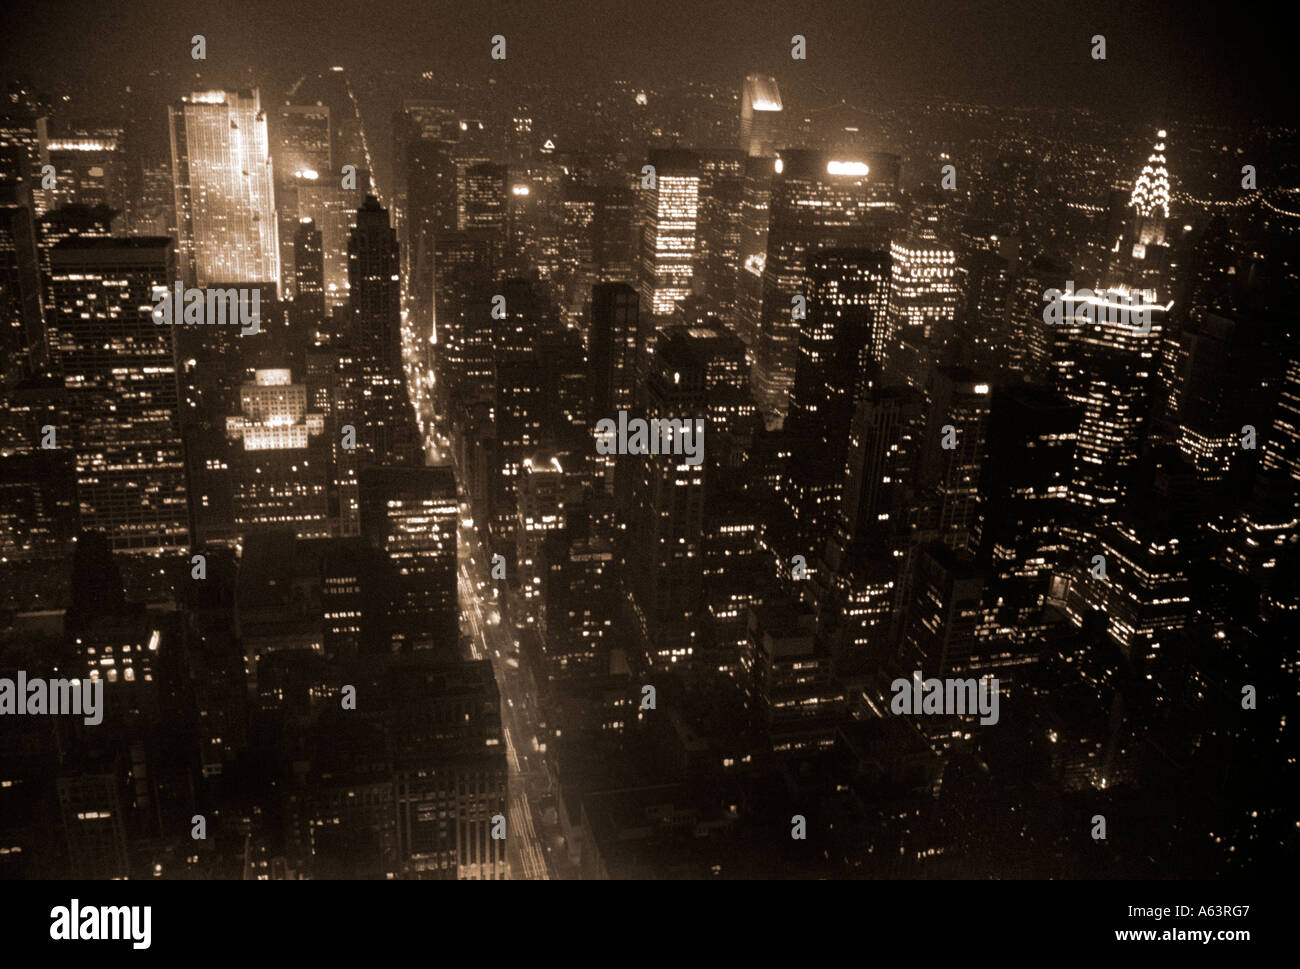 NYC At Night,As Seen From The Top Of The Empire State Building Stock Photo